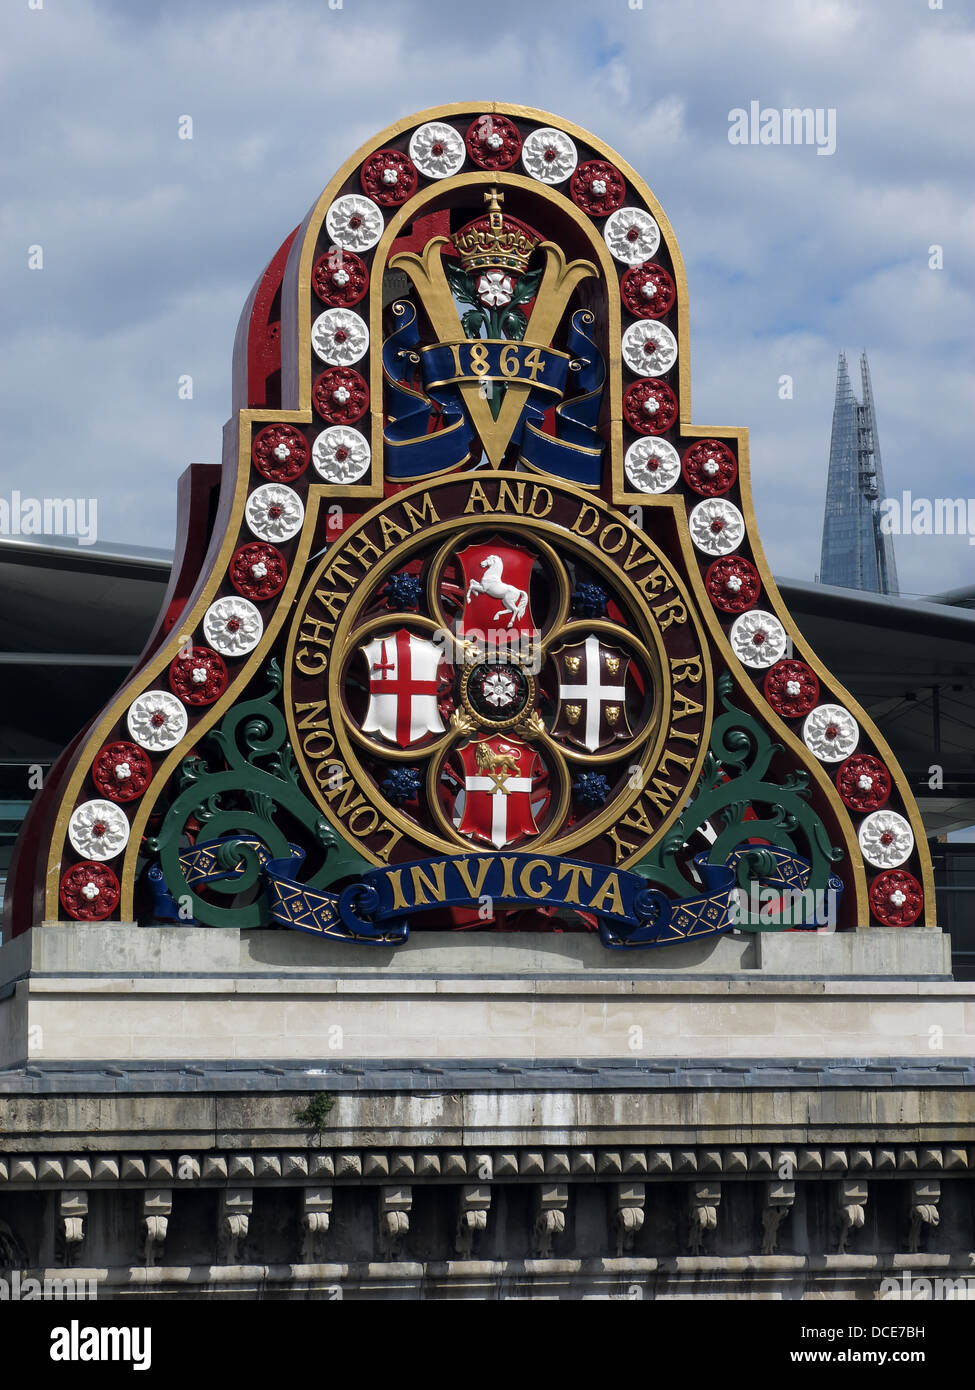 LCDR,crest,Thames,coat,of,arms,city,of,history,station,decoration,victorian,colorful,colourful,decoration,transport,historic,rail,railroad,England,UK,GB,great,british,britain,Invicta,freshly,painted,renovated,1864,construction,metal,embankment,trail,riverside,river,side,beside,BR,British,rail,Britis,Gotonysmith,London,Chatham,and,Dover,railway,Invicta,bridge,support,at,Blackfriars,London,England with The Shard in the background,Buy Pictures of,Buy Images Of